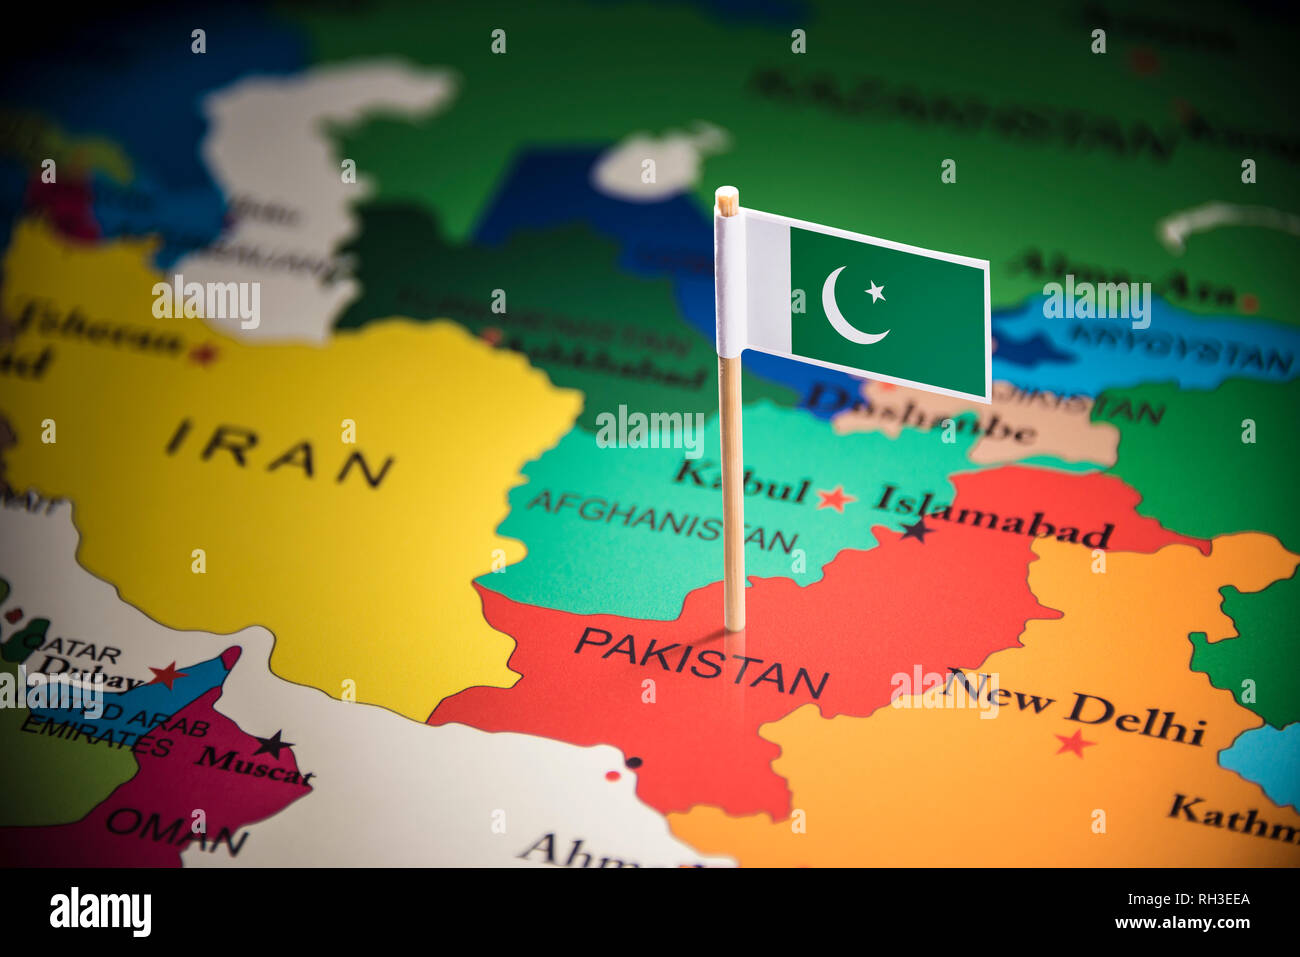 Official Flag Of Pakistan Stock Photos & Official Flag Of